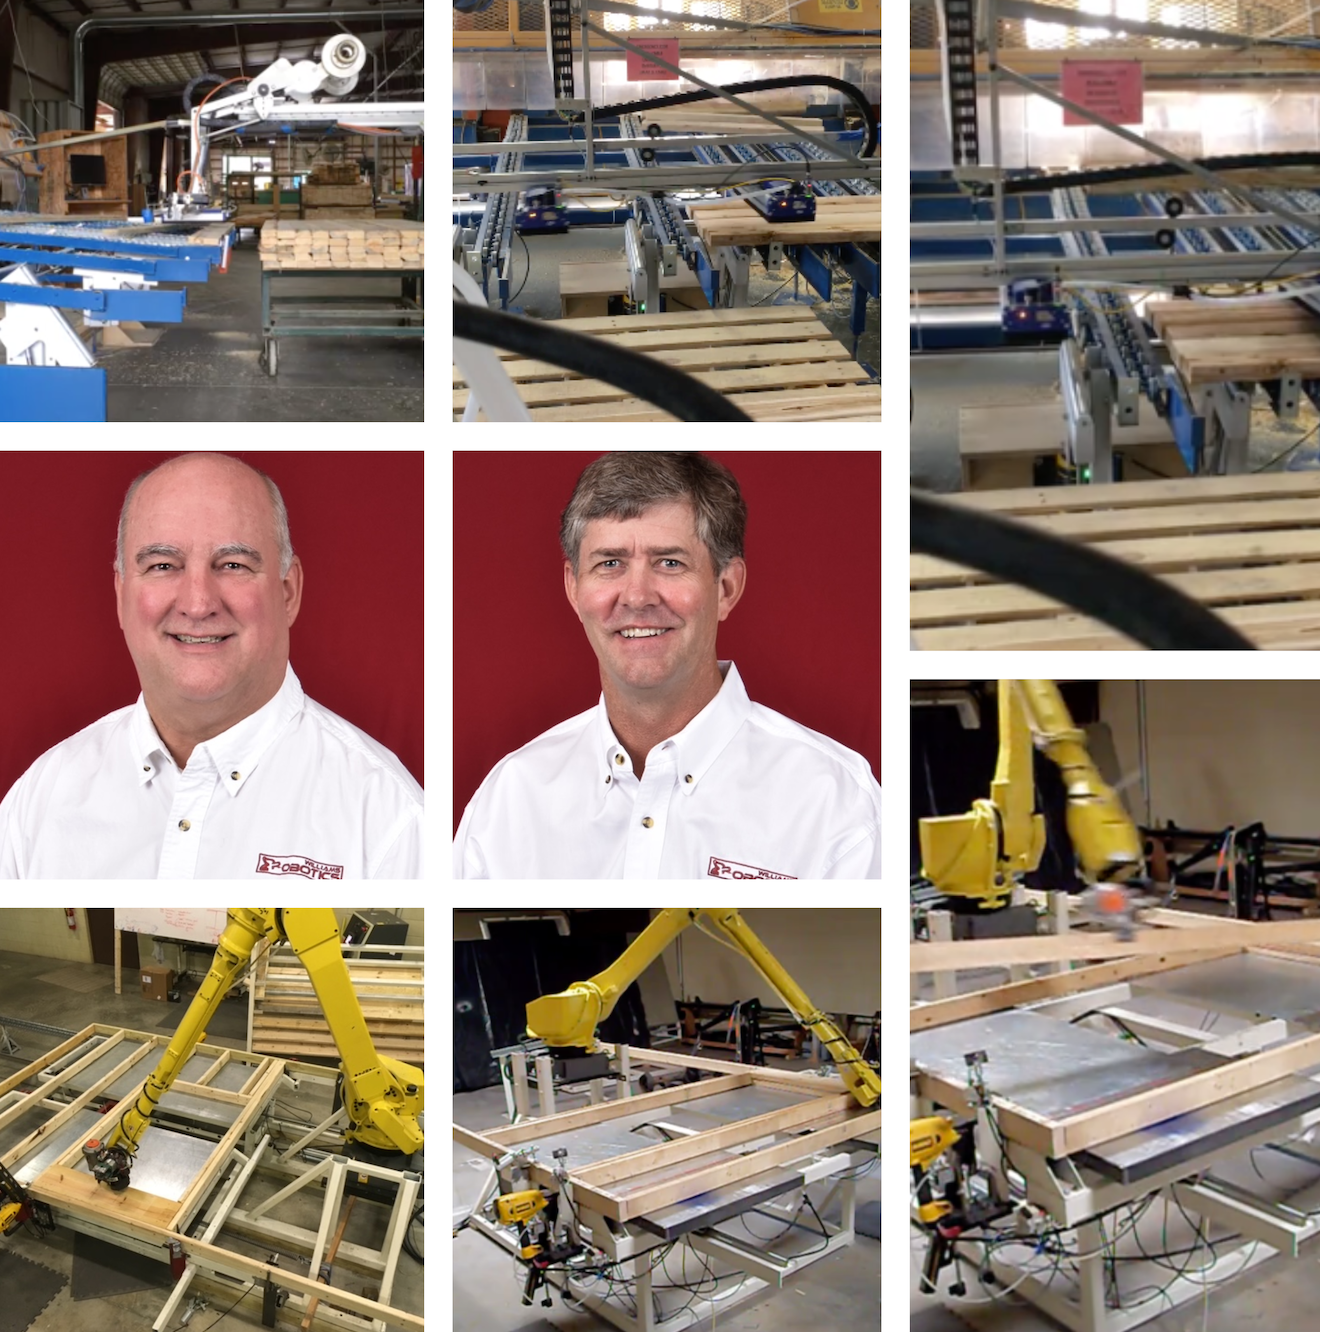 Jeff Williams and Walker Harris, co-founders of Williams Robotics, have adapted an auto assembly line robotic arm for homebuilding applications. Their robot assembles 2x4 or 2x6 stud walls ranging in height from 7 to 10 feet, while leaving rough openings for windows and doors. Images courtesy Williams Robotics